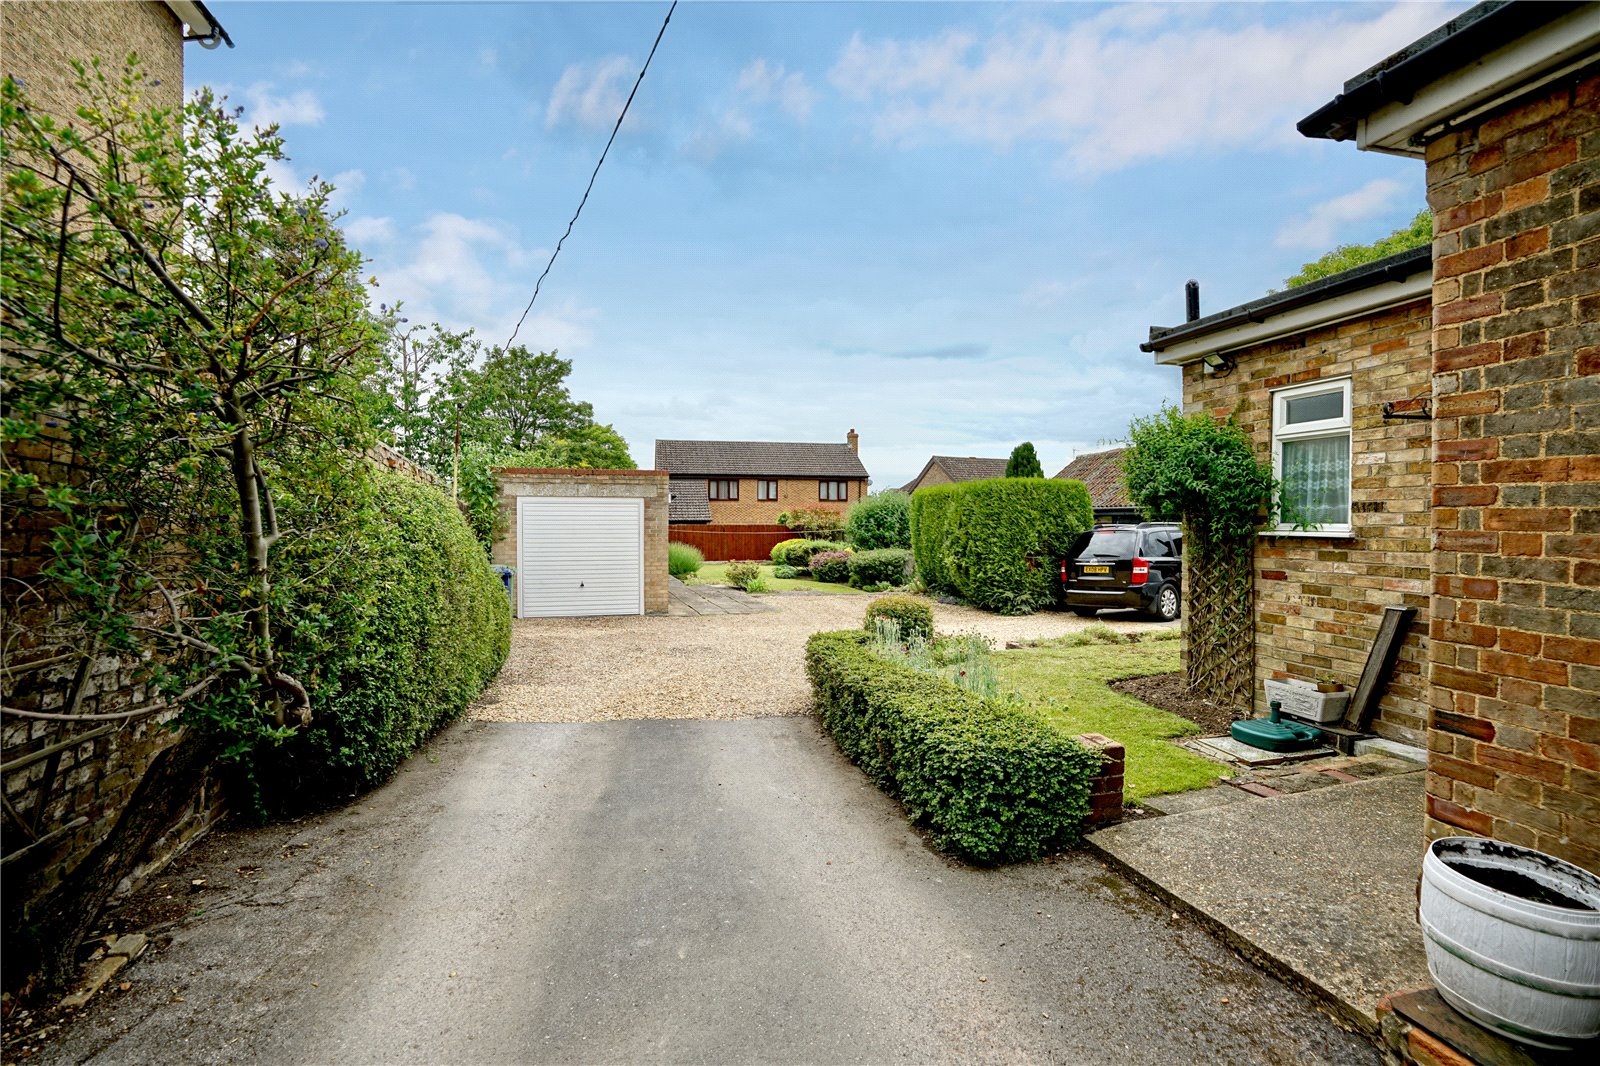 3 bed house for sale in Great North Road, Eaton Socon 2